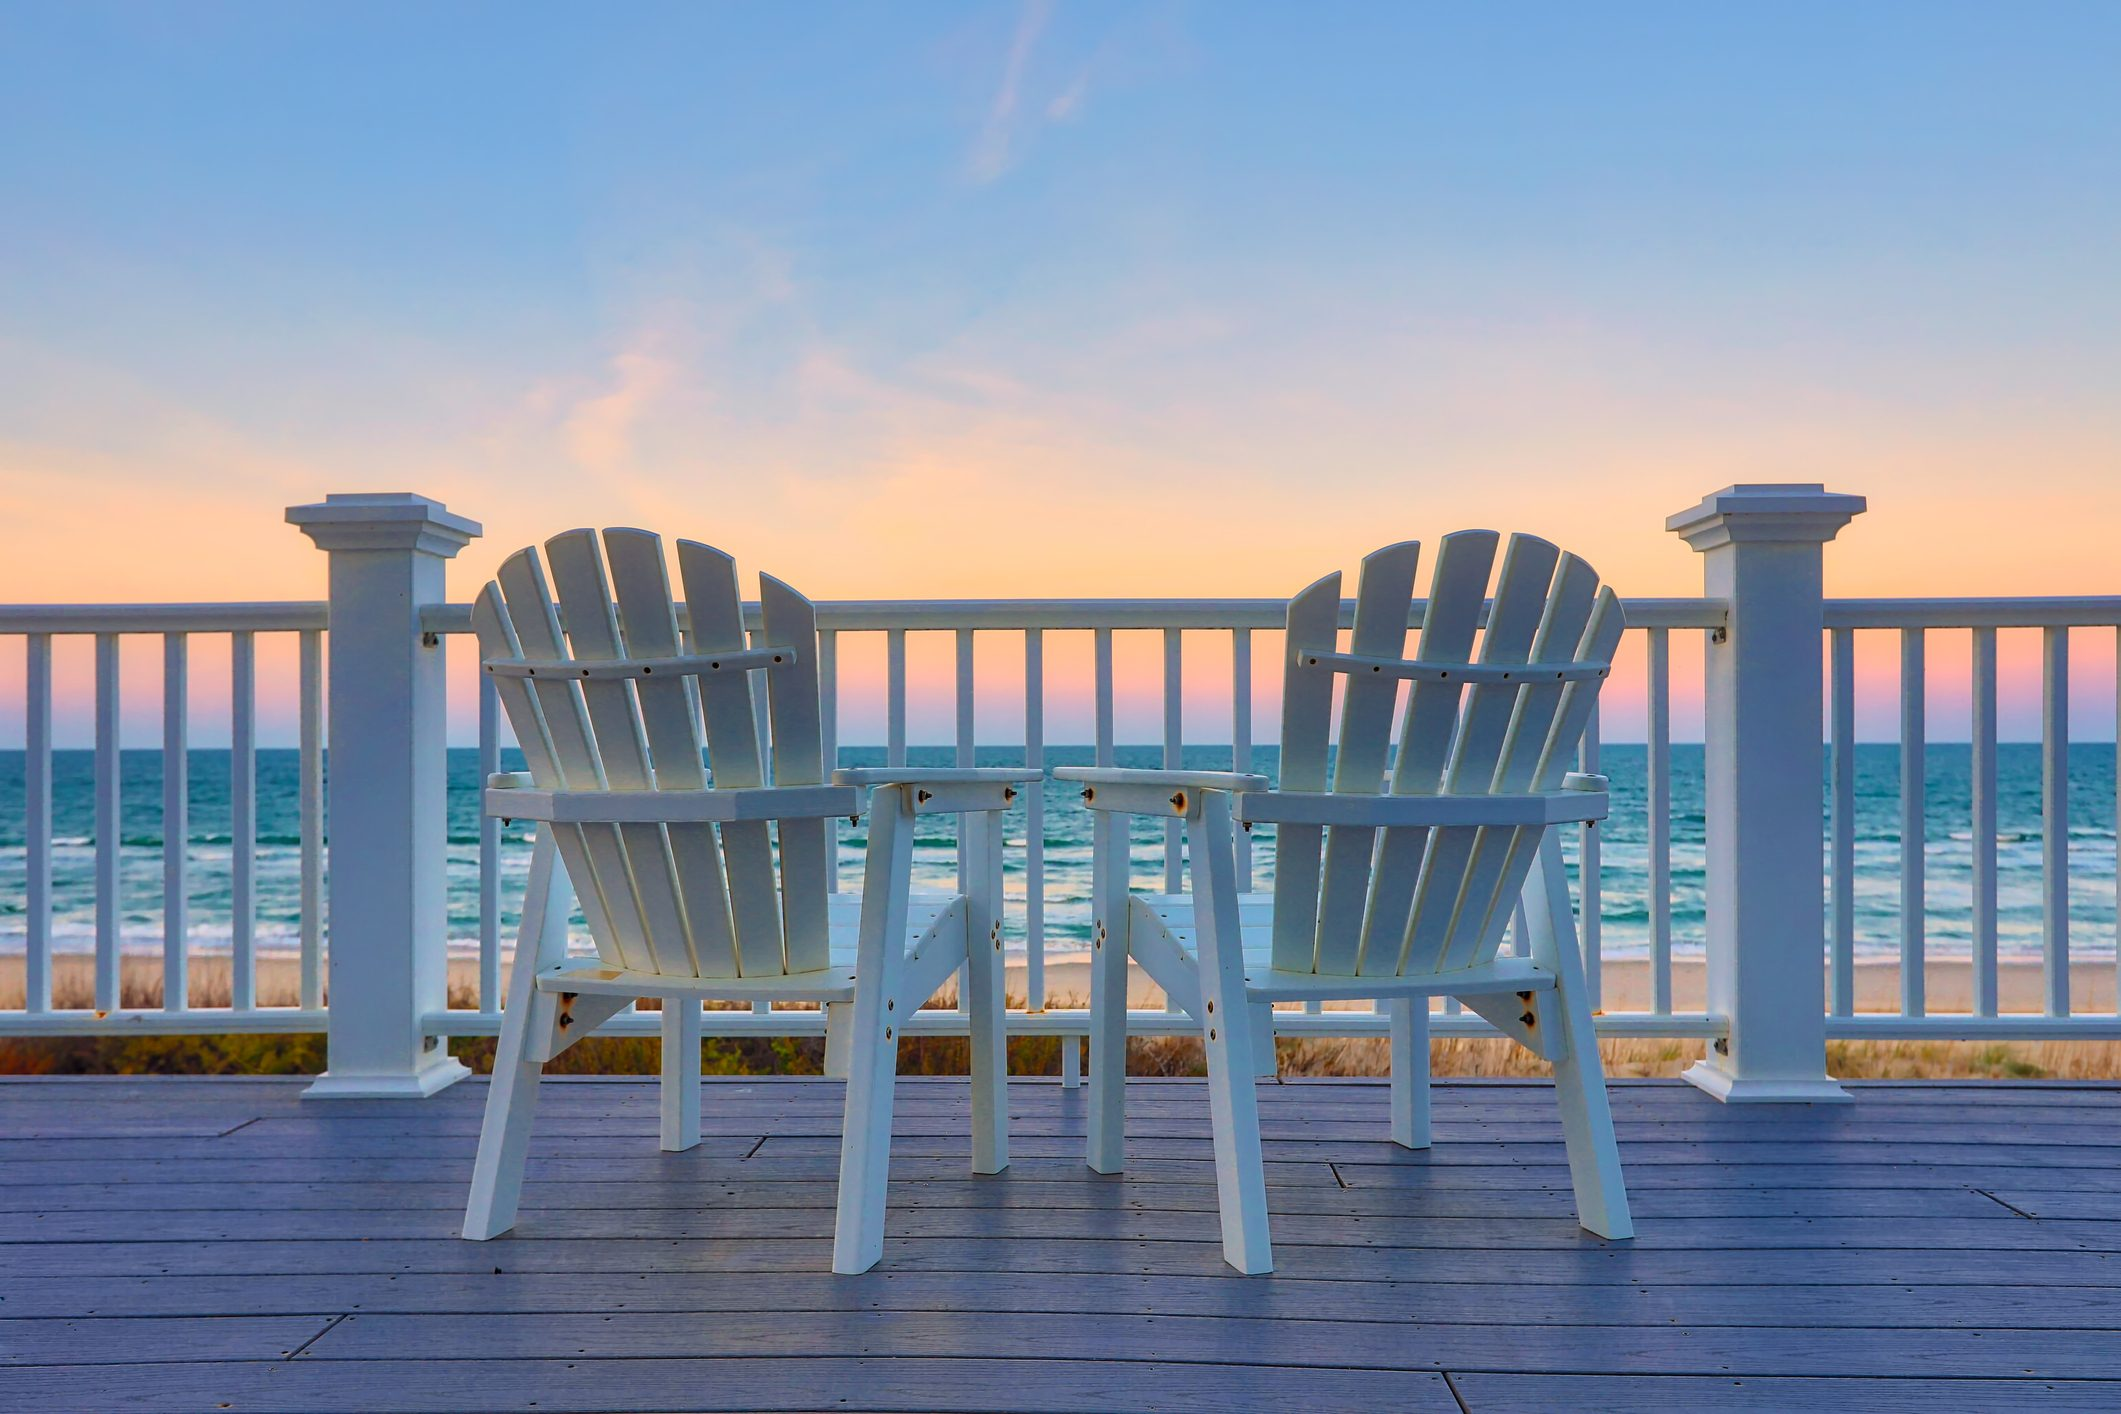 Enjoy the view of the ocean from a chair while on vacation